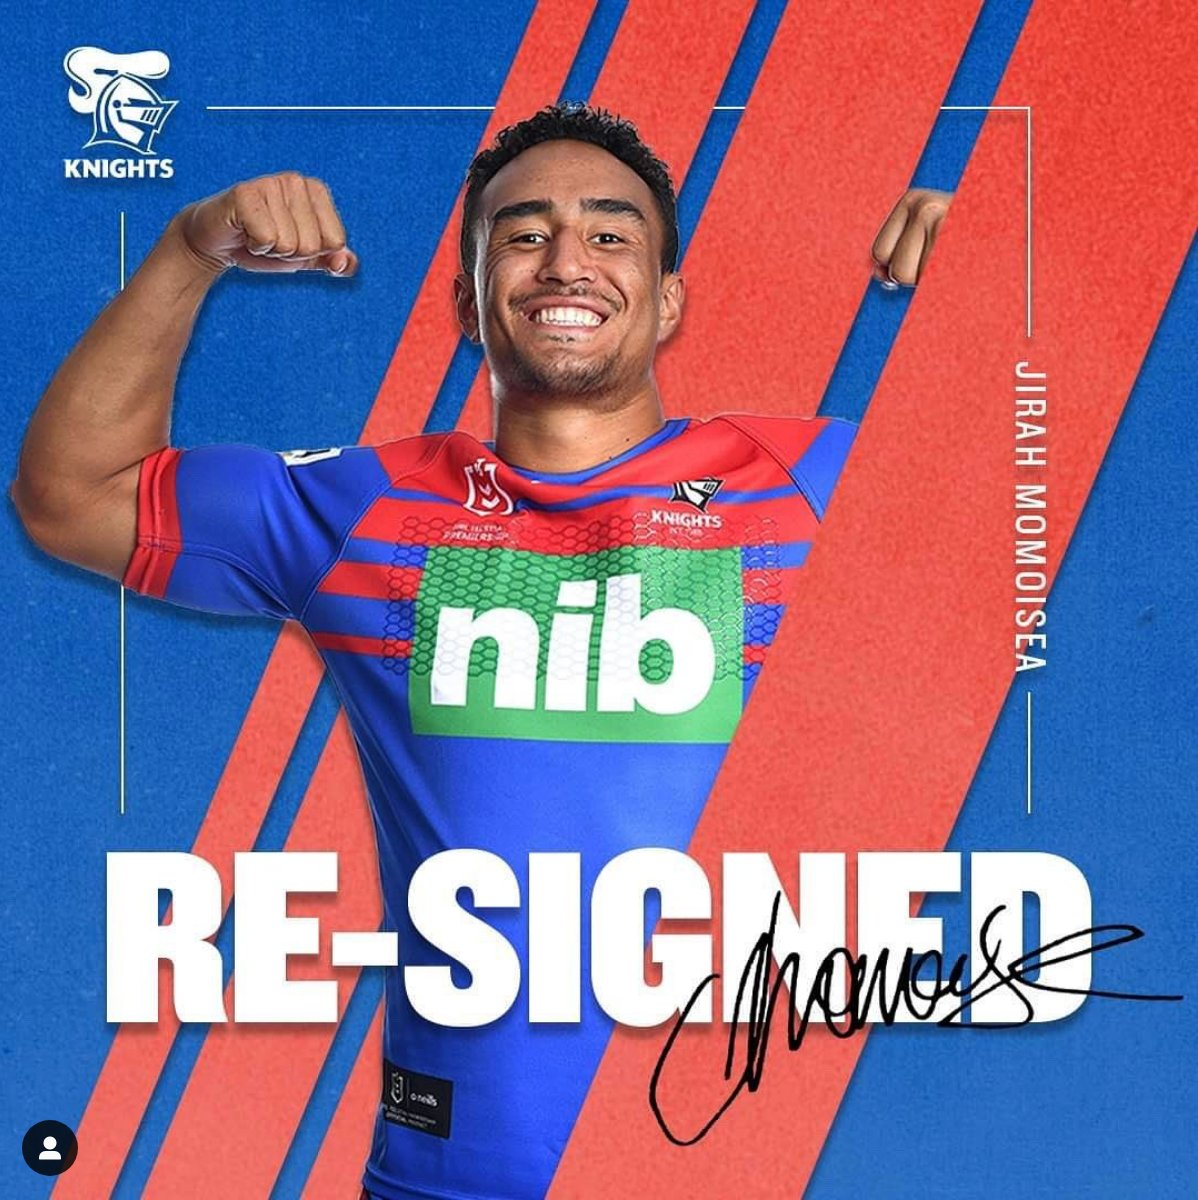 JIRAH!!!  So proud of this kid man - hard work, patience, sacrifice + dedication & now he's just signed his first Top 30 NRL contract on a 3 year deal ❤️